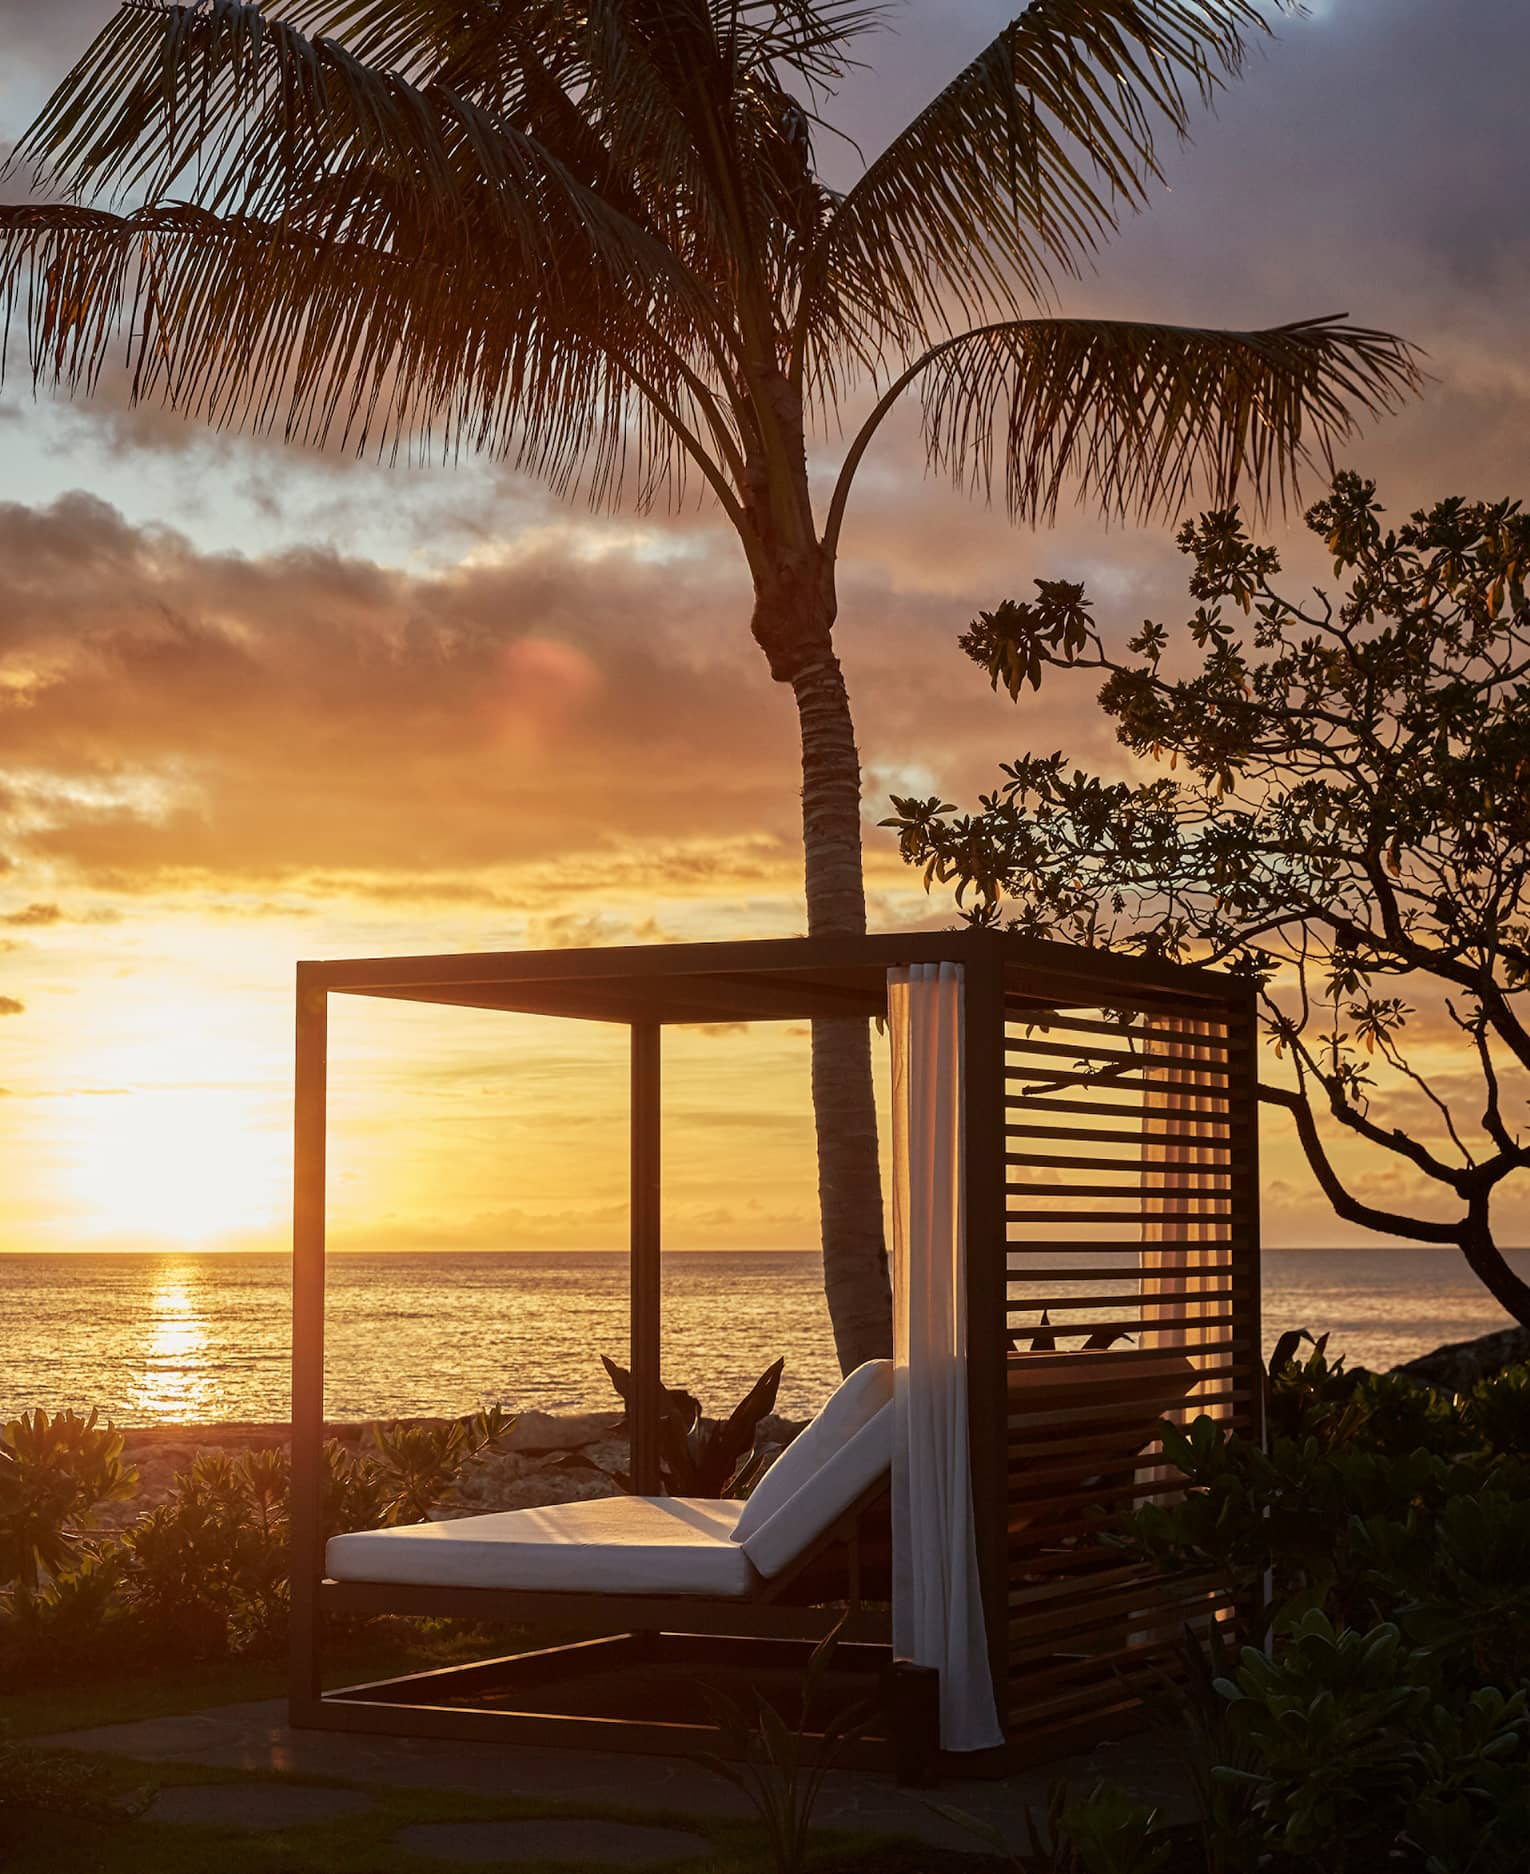 Daybed overlooking the beach during sunset